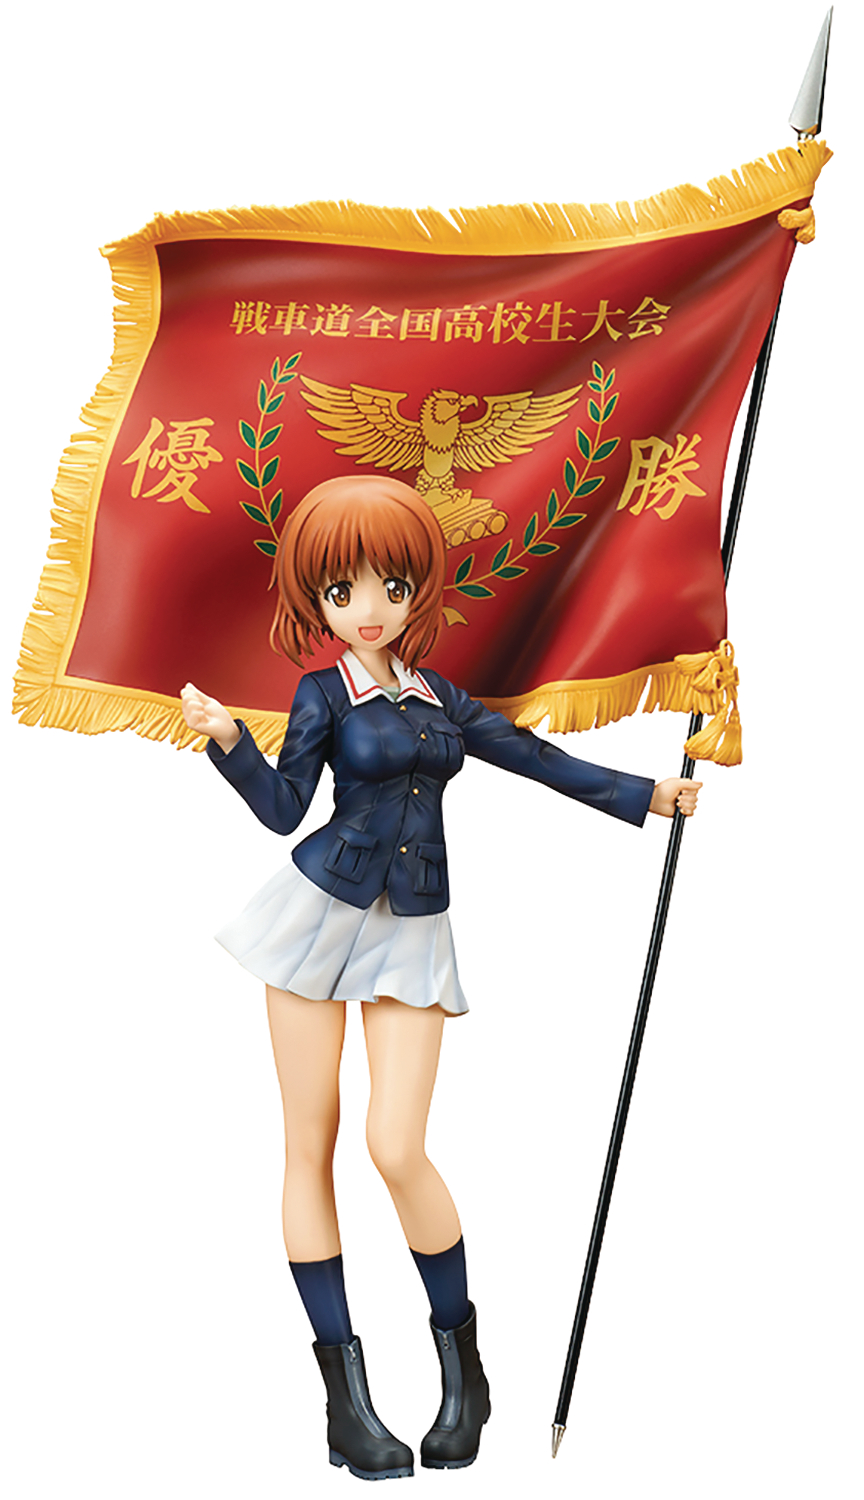 GIRLS UND PANZER MOVIE MIHO NISHIZUMI 1/7 PVC FIG W/ FLAG (C